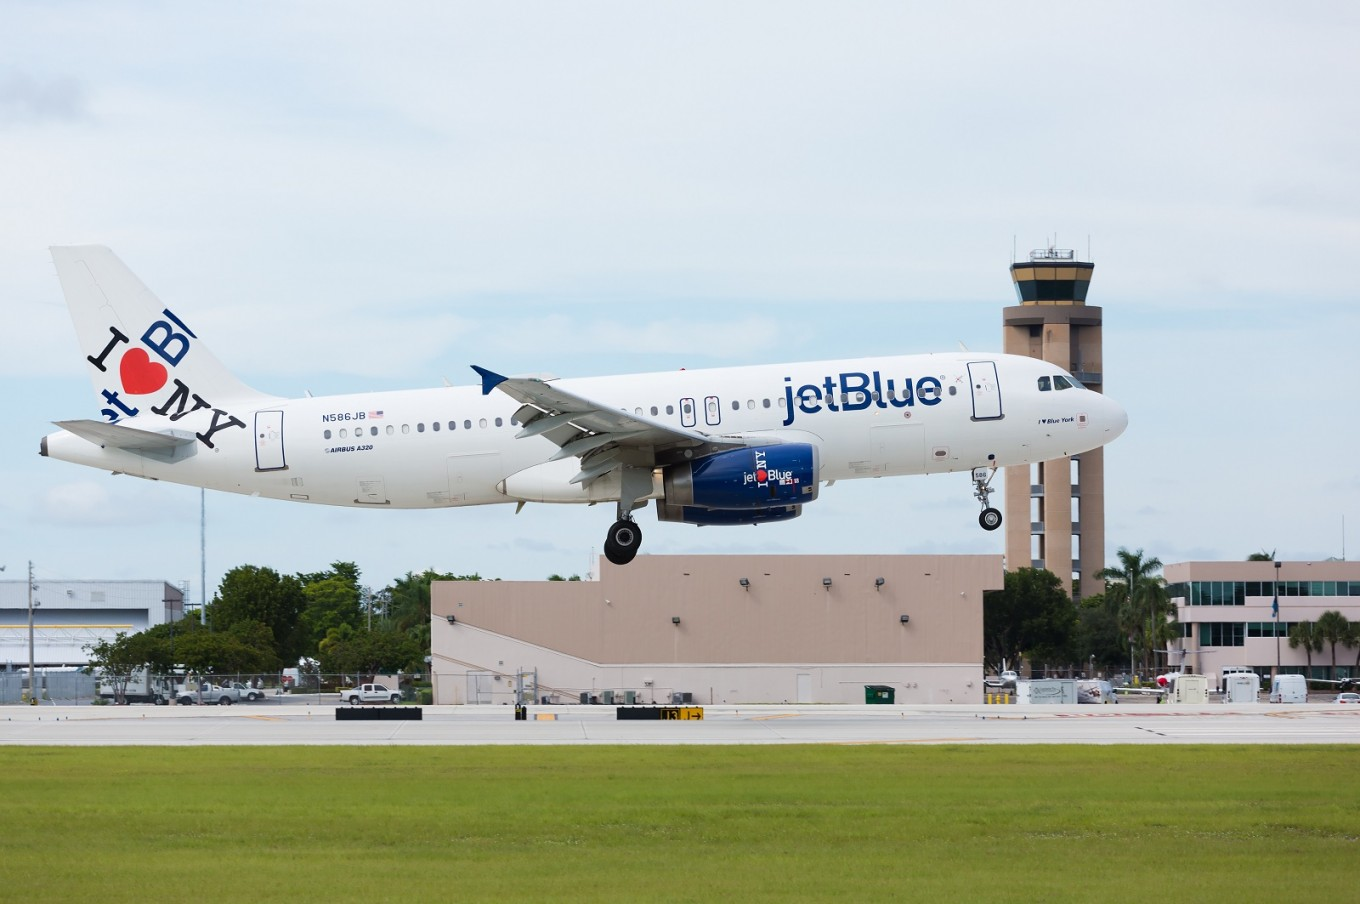 Just show your face to board a JetBlue flight